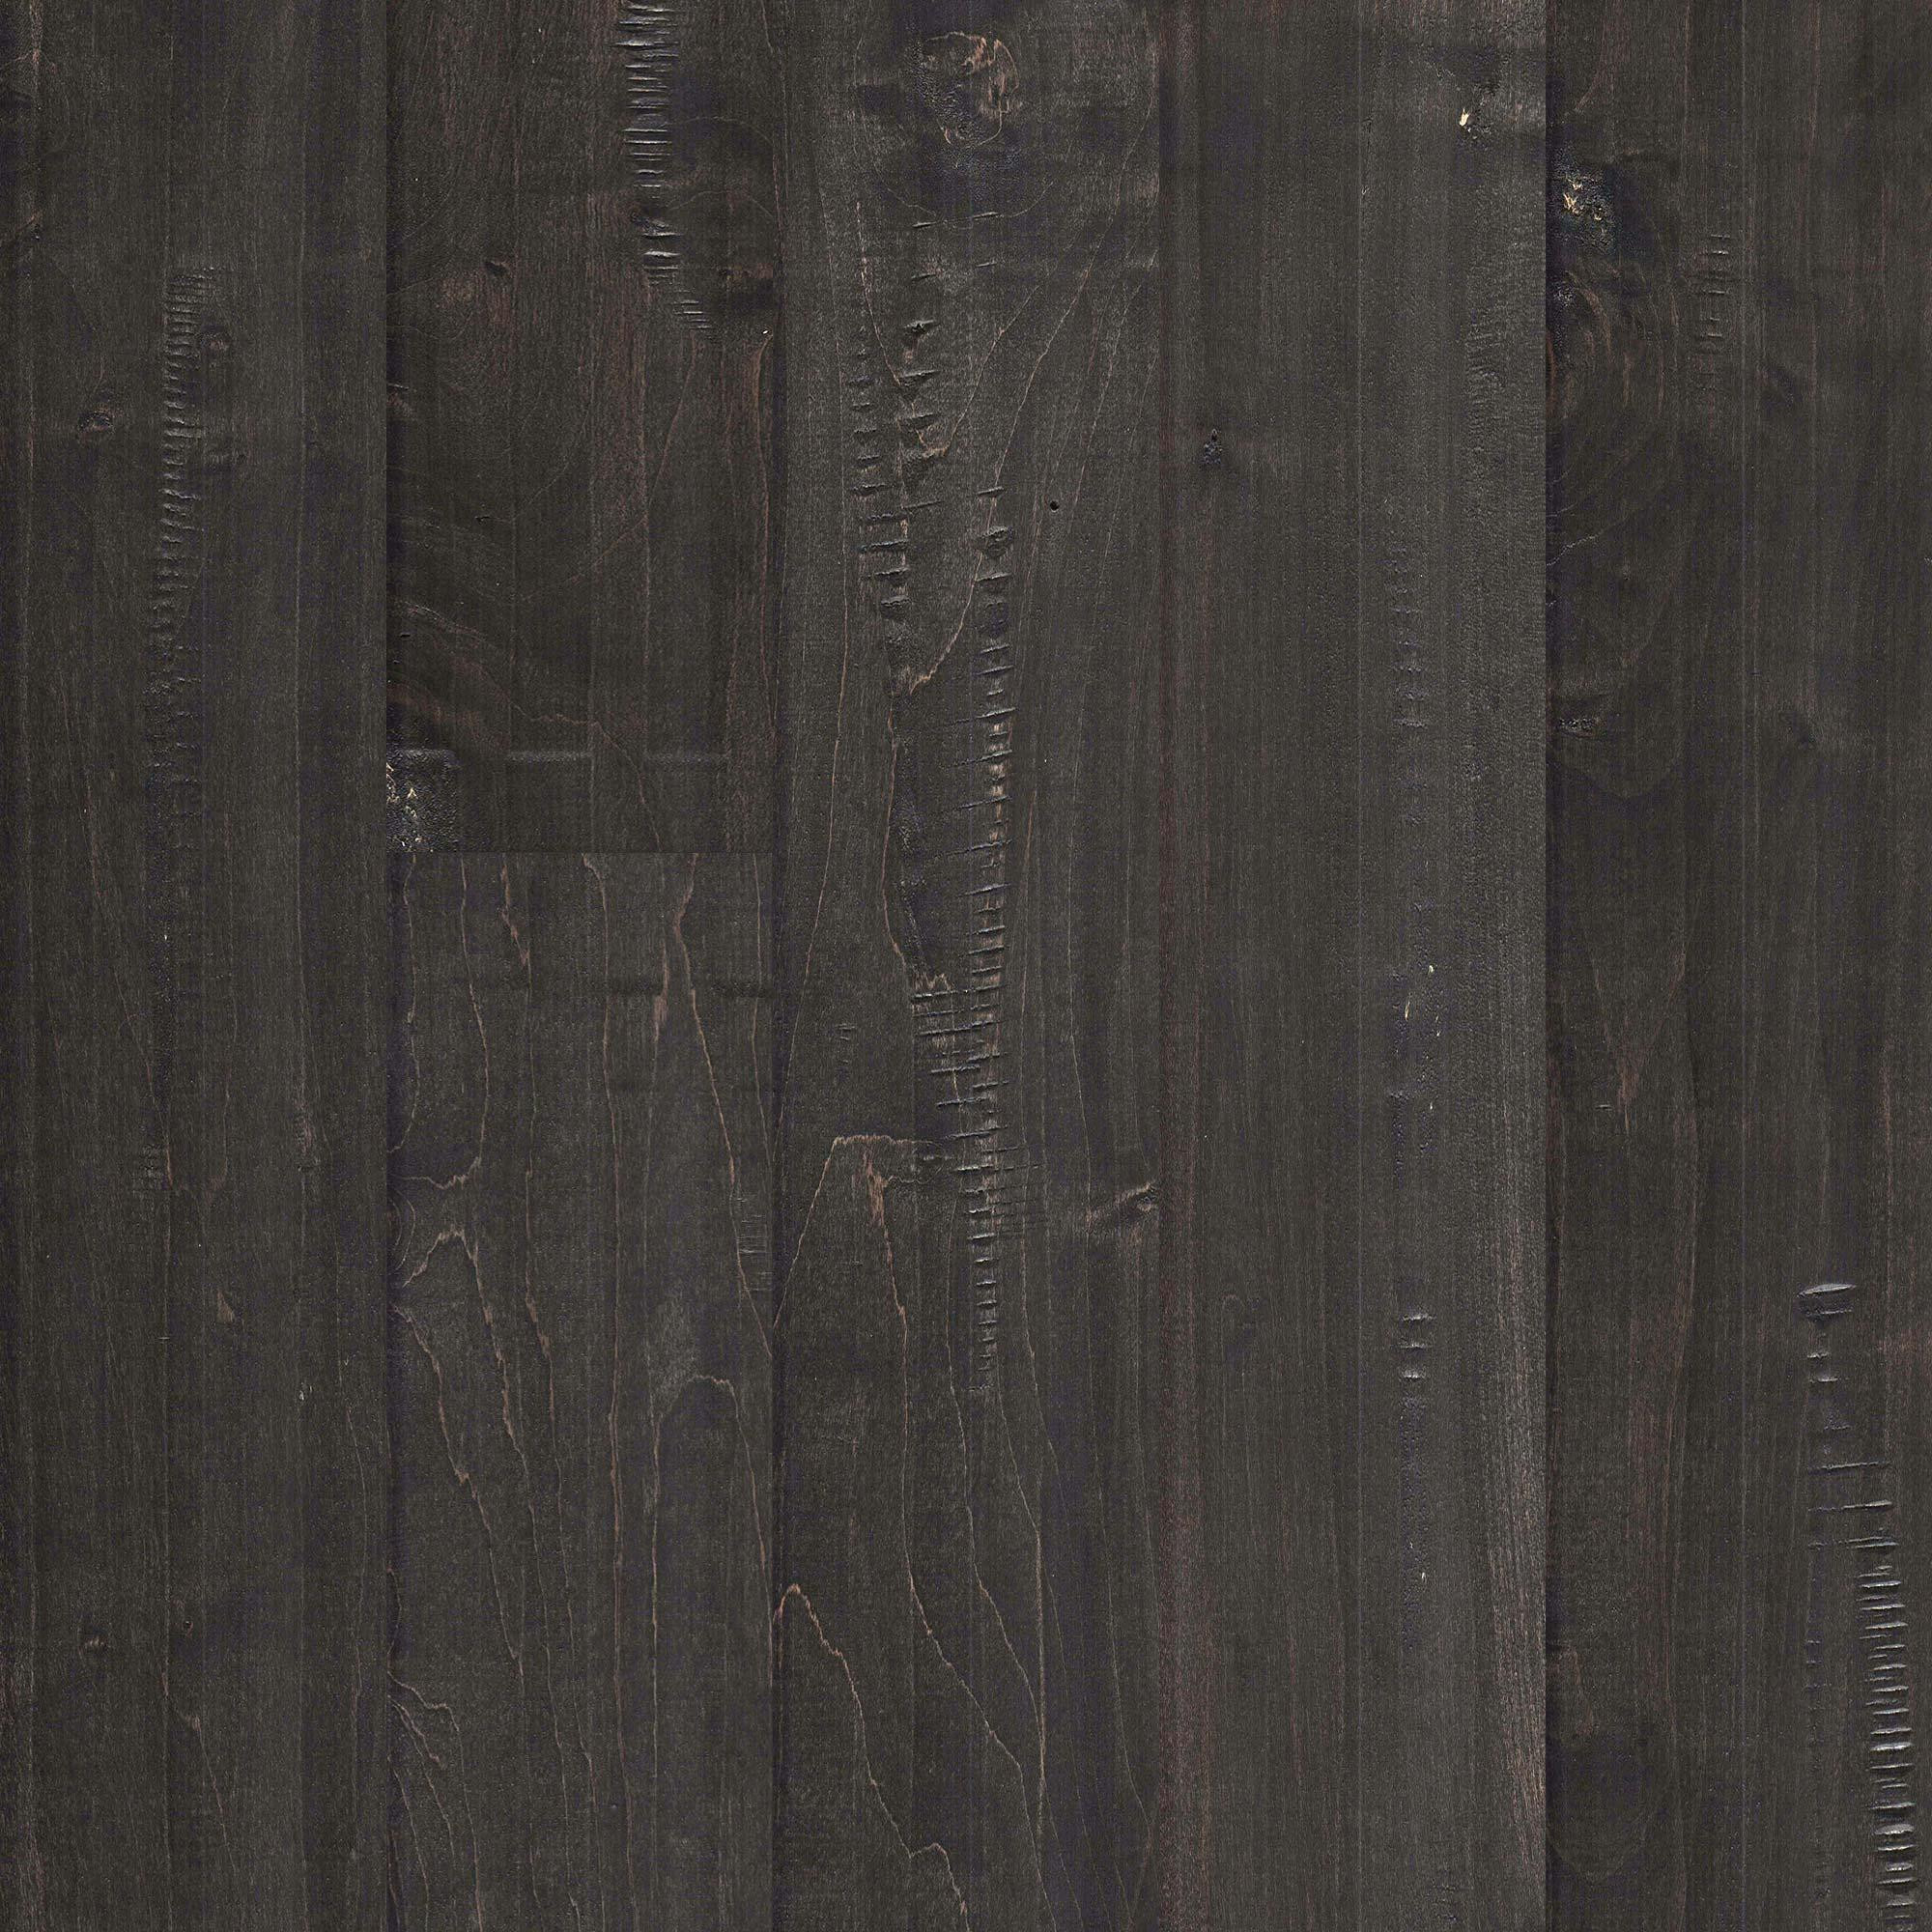 maple leaf engineered hardwood flooring reviews of kingsmill legacy maple handscraped 4 wide 3 4 solid hardwood flooring regarding legacy m uled4 4 x 48 approved